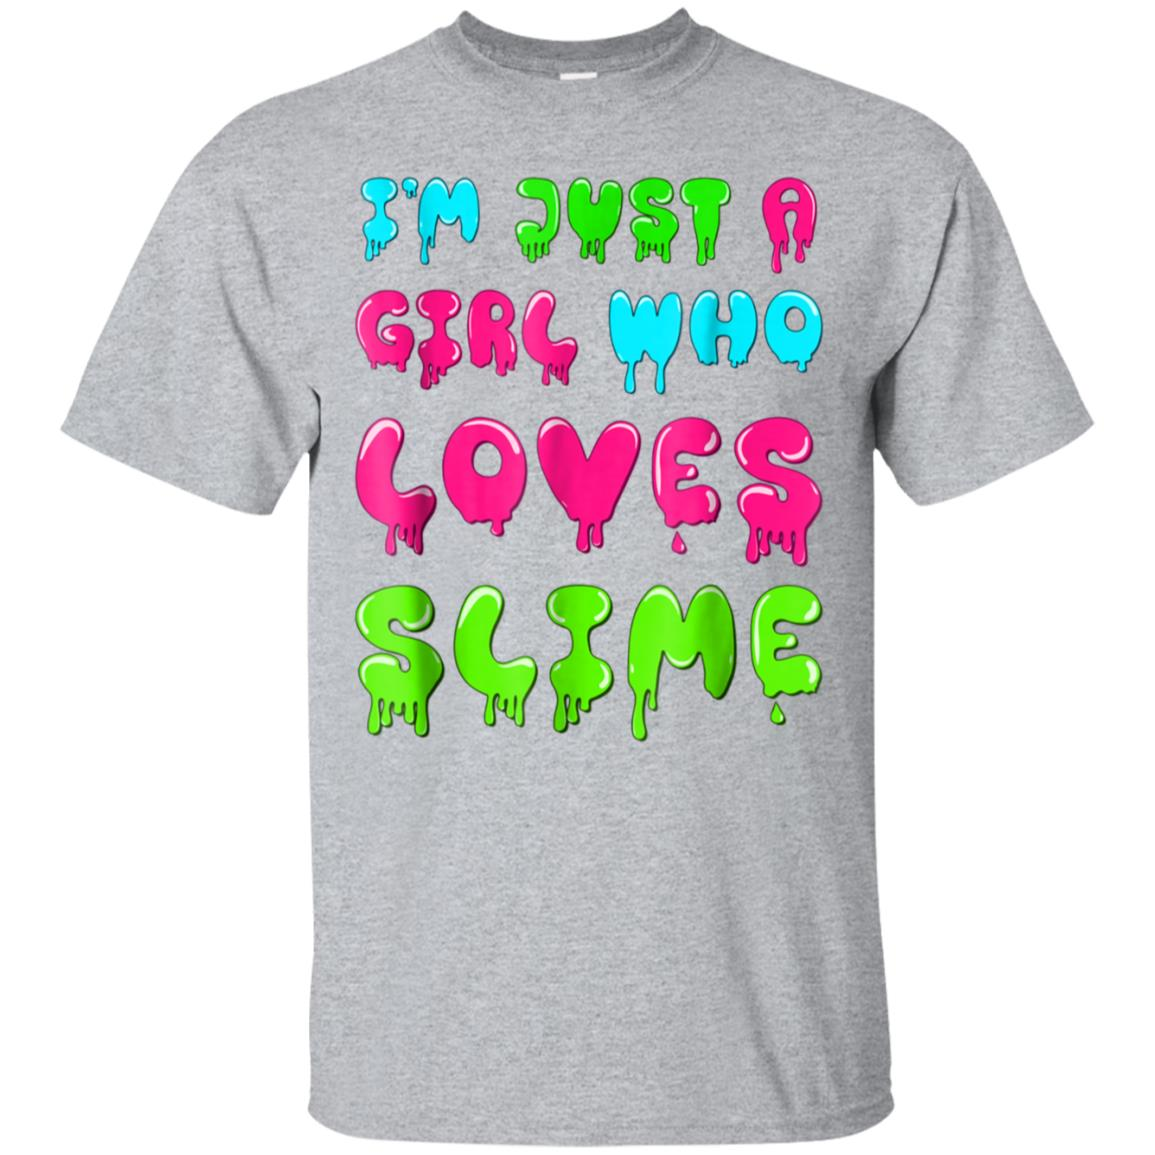 Slime Shirt - Just a Girl Who Loves Slime 99promocode